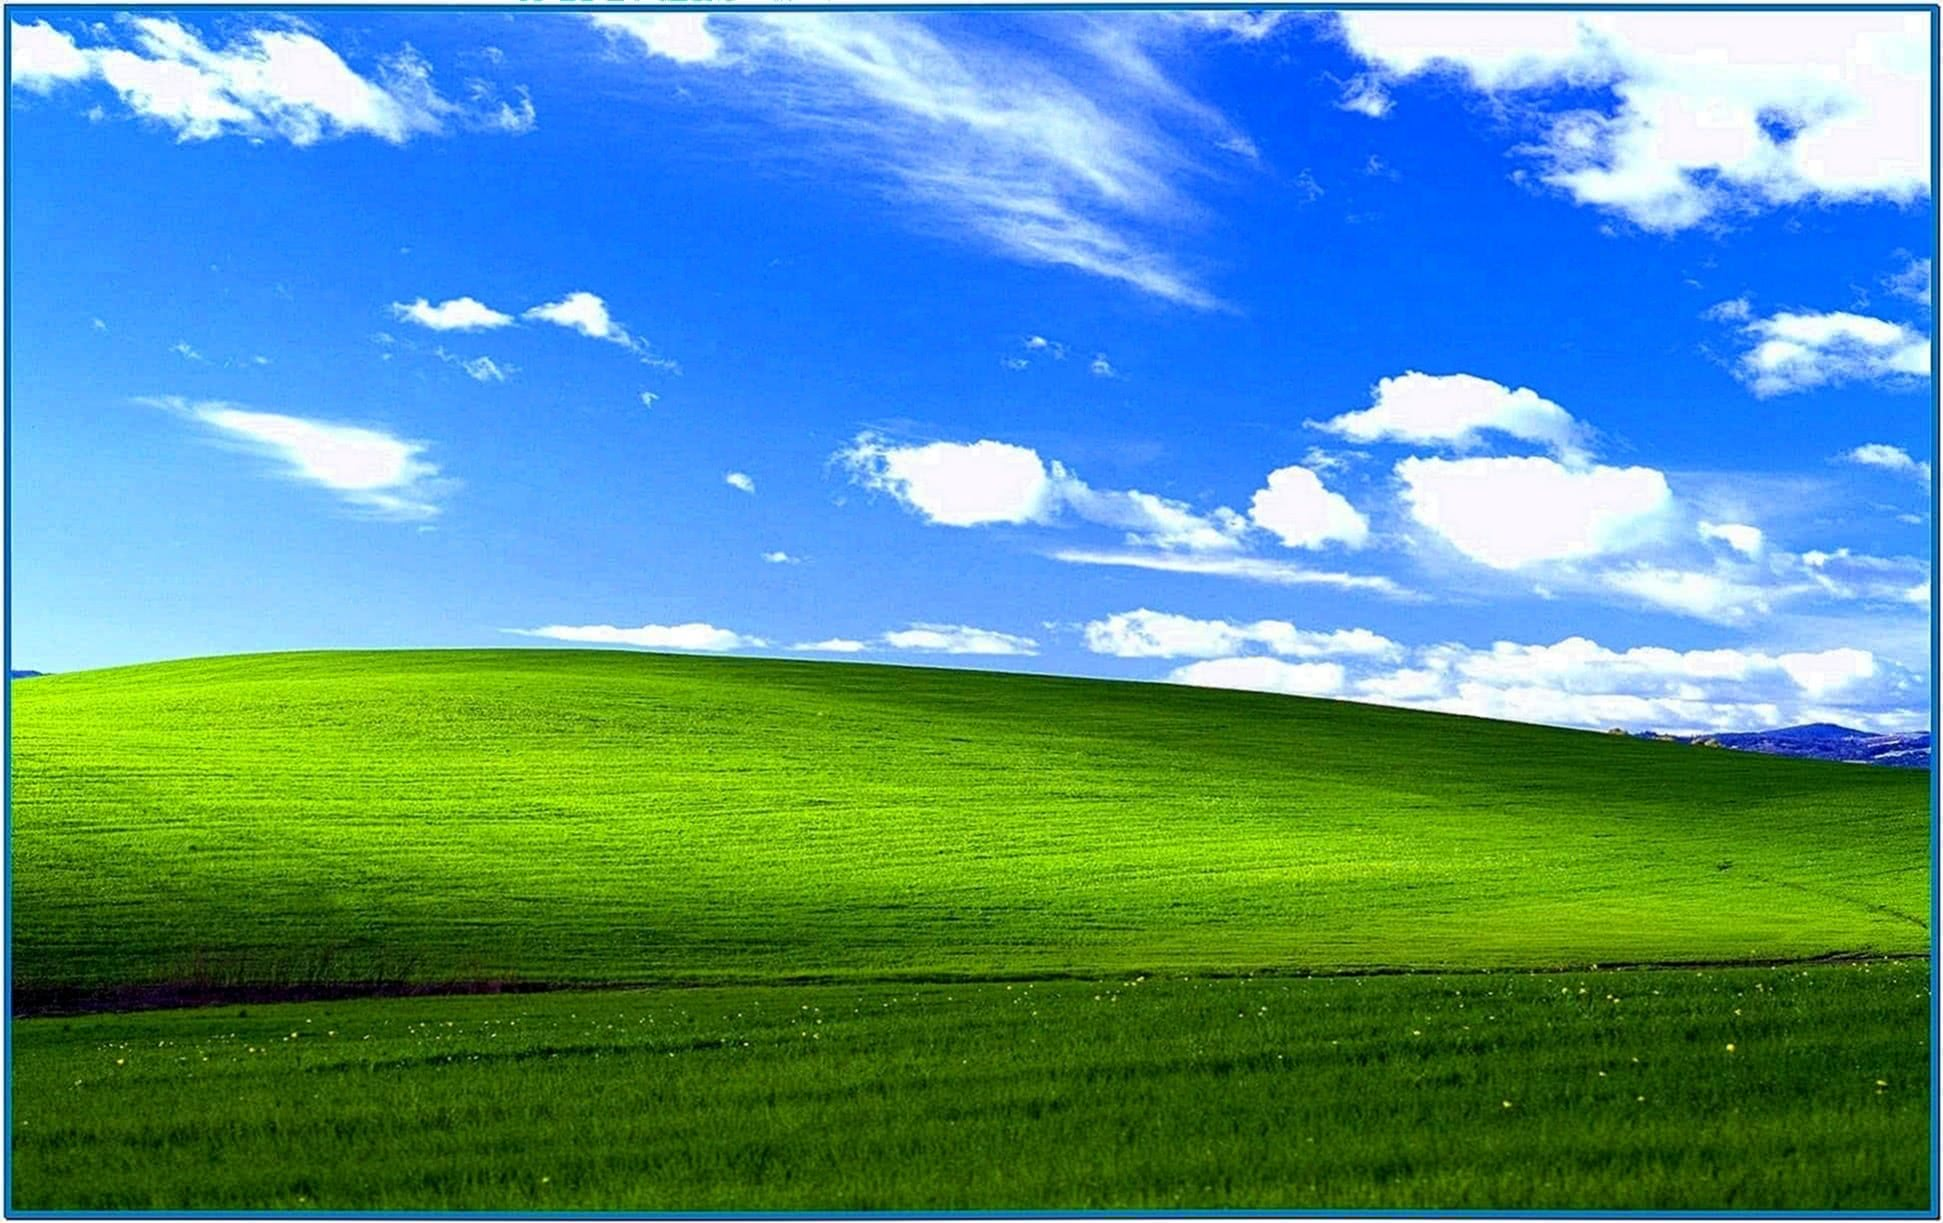 Screensaver as Wallpaper Windows XP